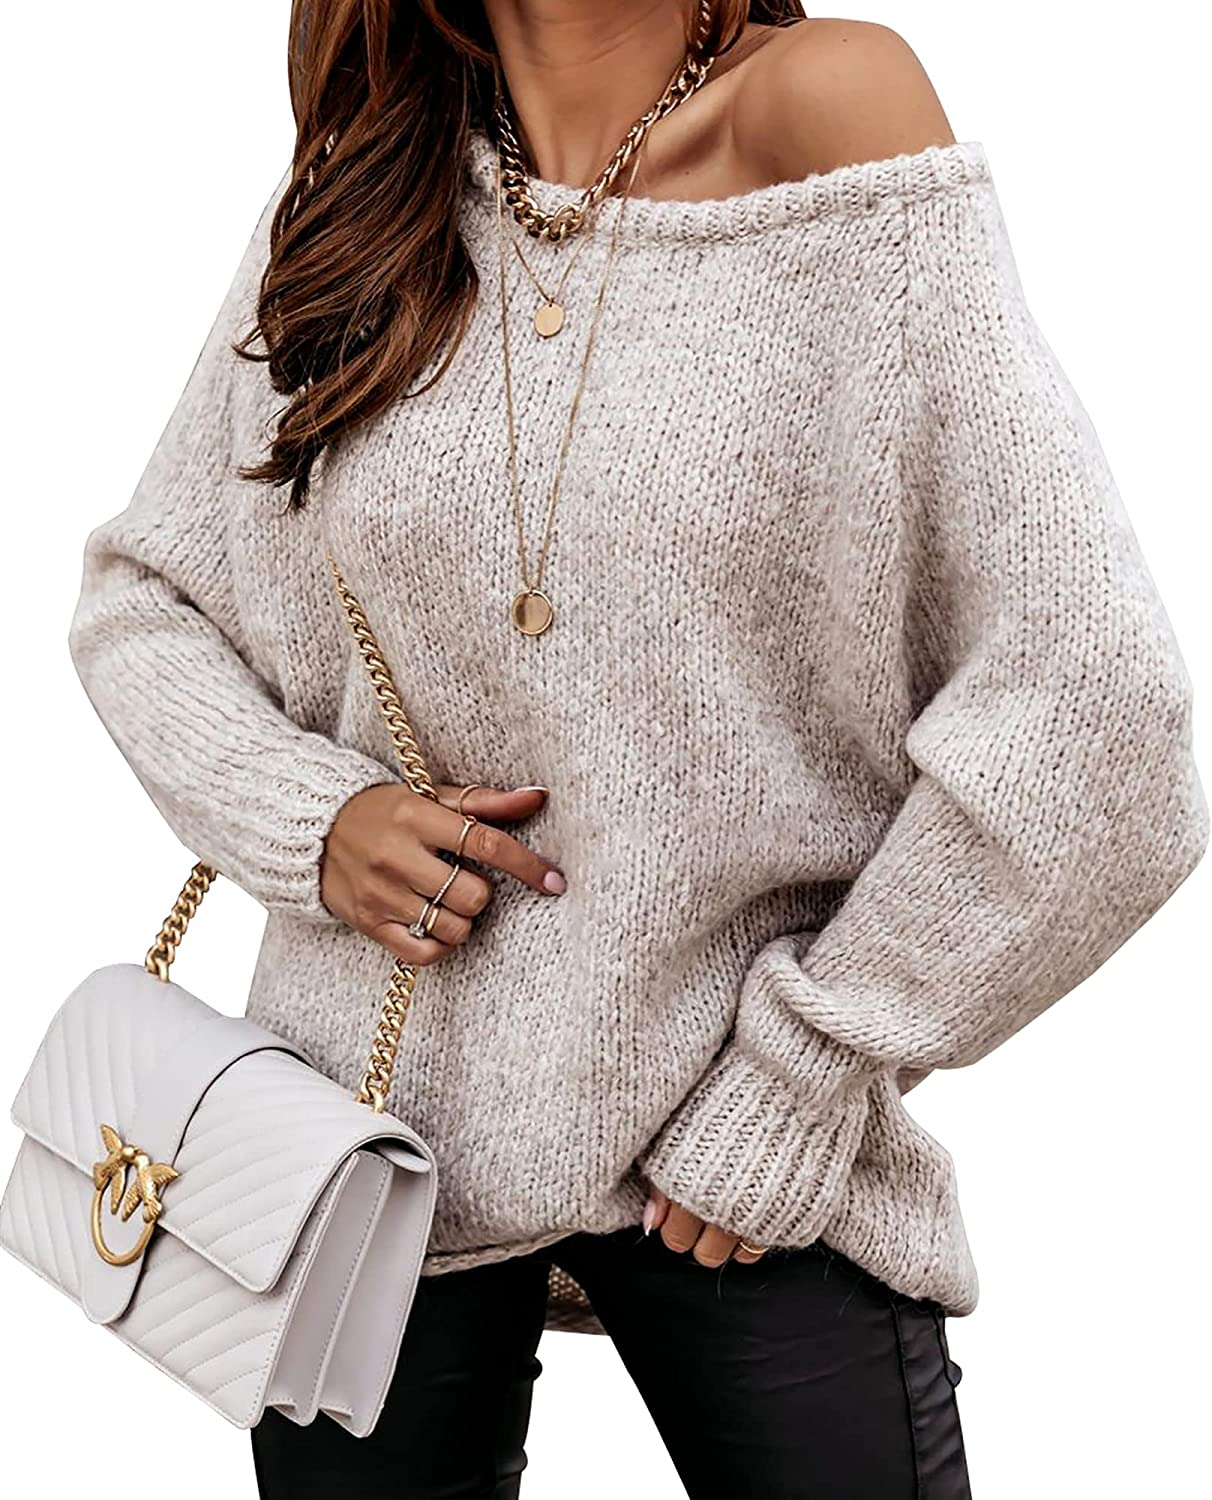 BTFBM Women's Long Sleeve Sweaters Casual Crew Neck Solid Color Soft Cozy Ribbed Knitted Pullover Sweater Jumper Tops